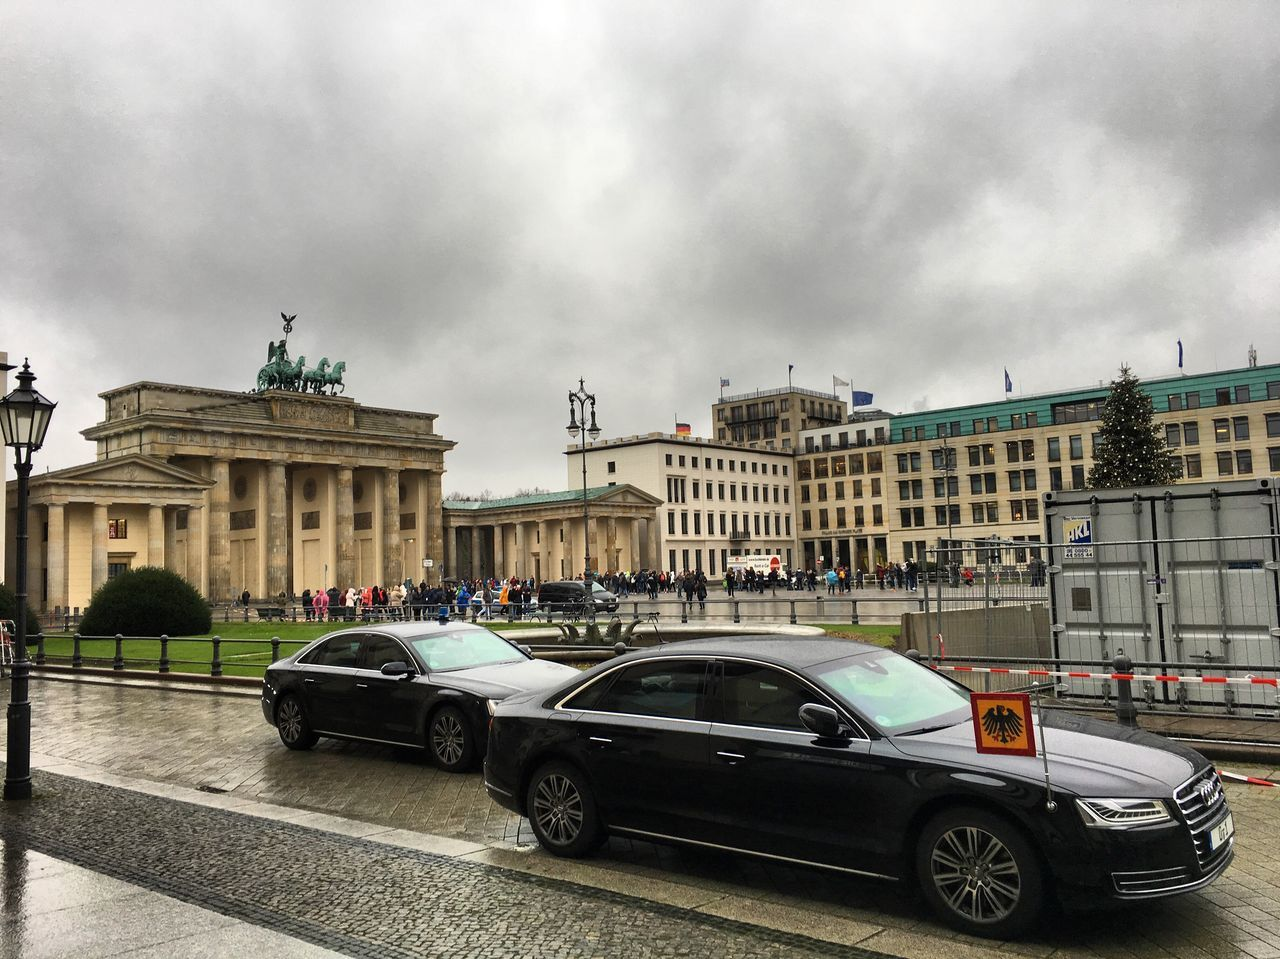 Car President Germany Gauck News Politics And Government